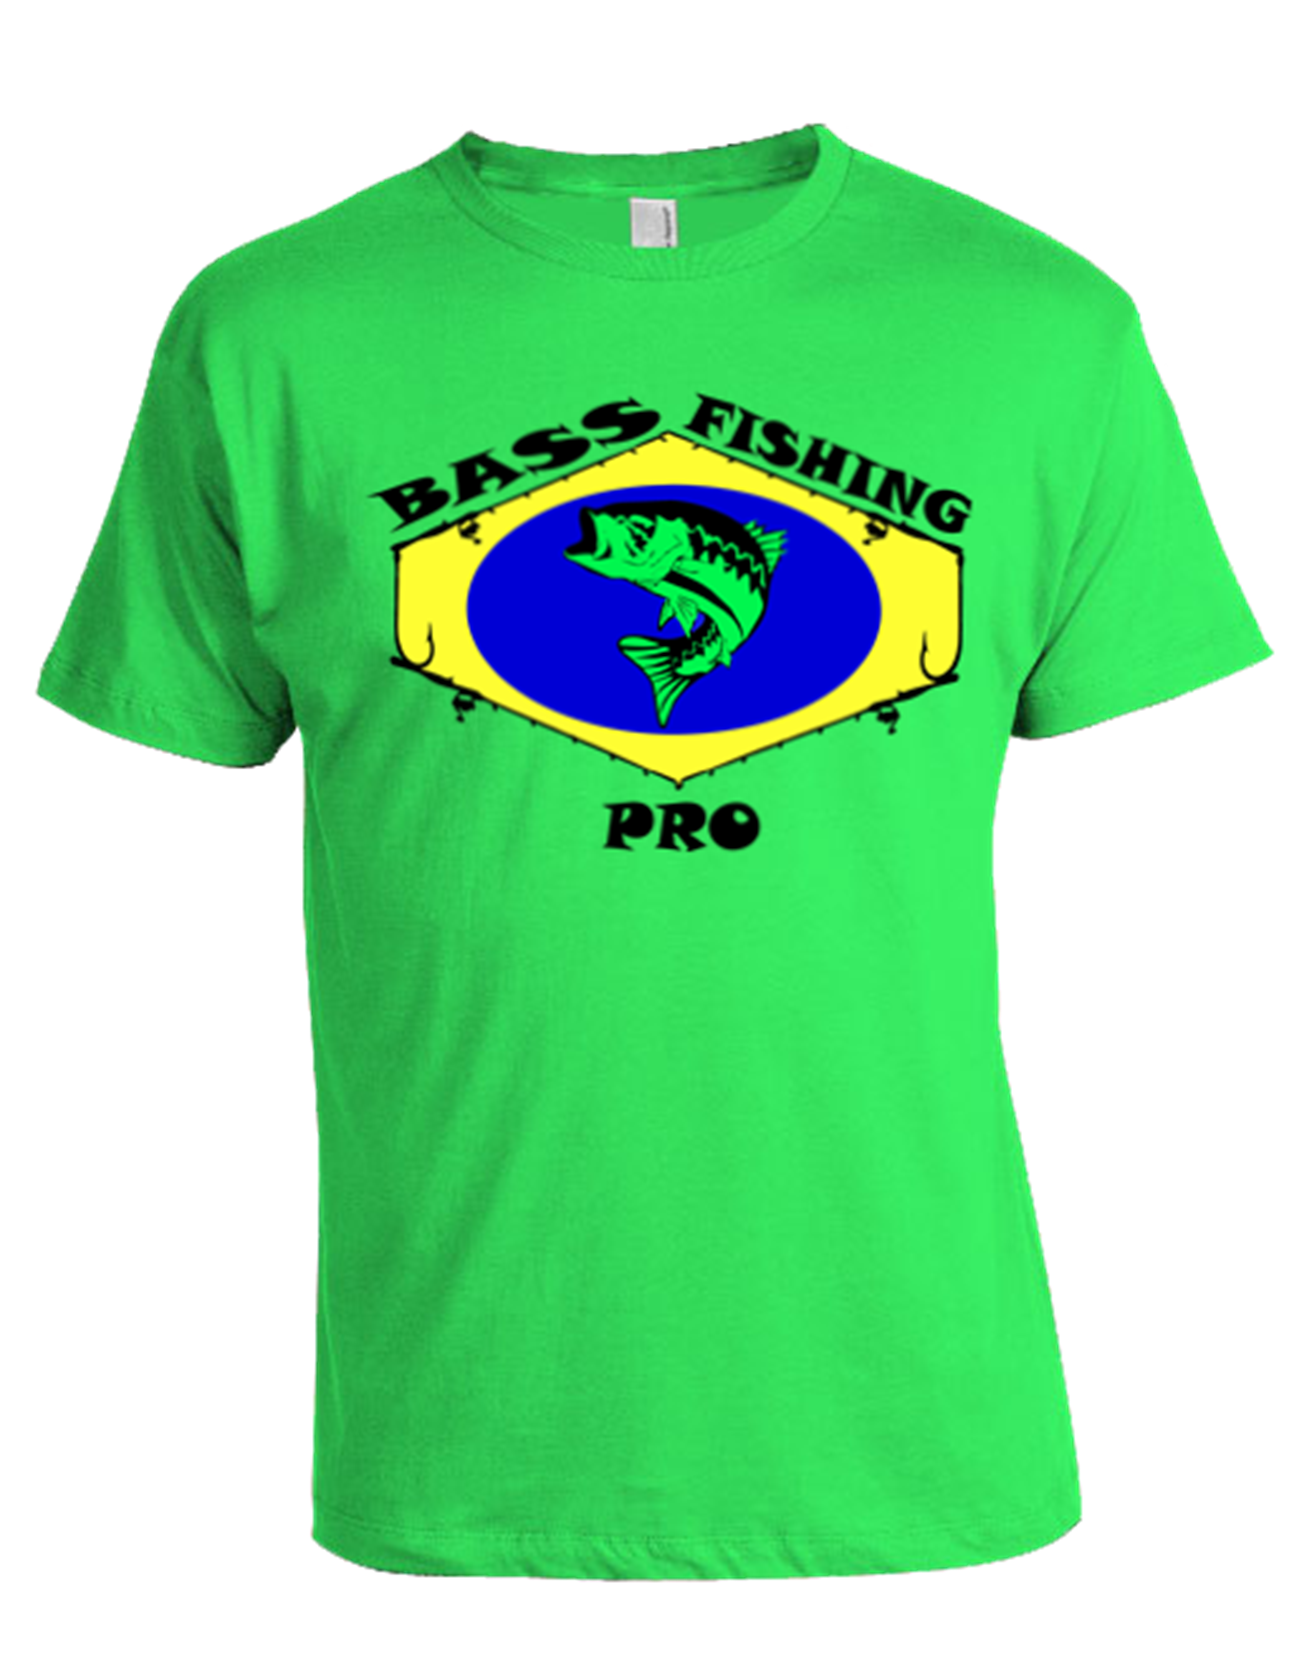 Bass Fishing Pro T Shirt Green Life House Ink